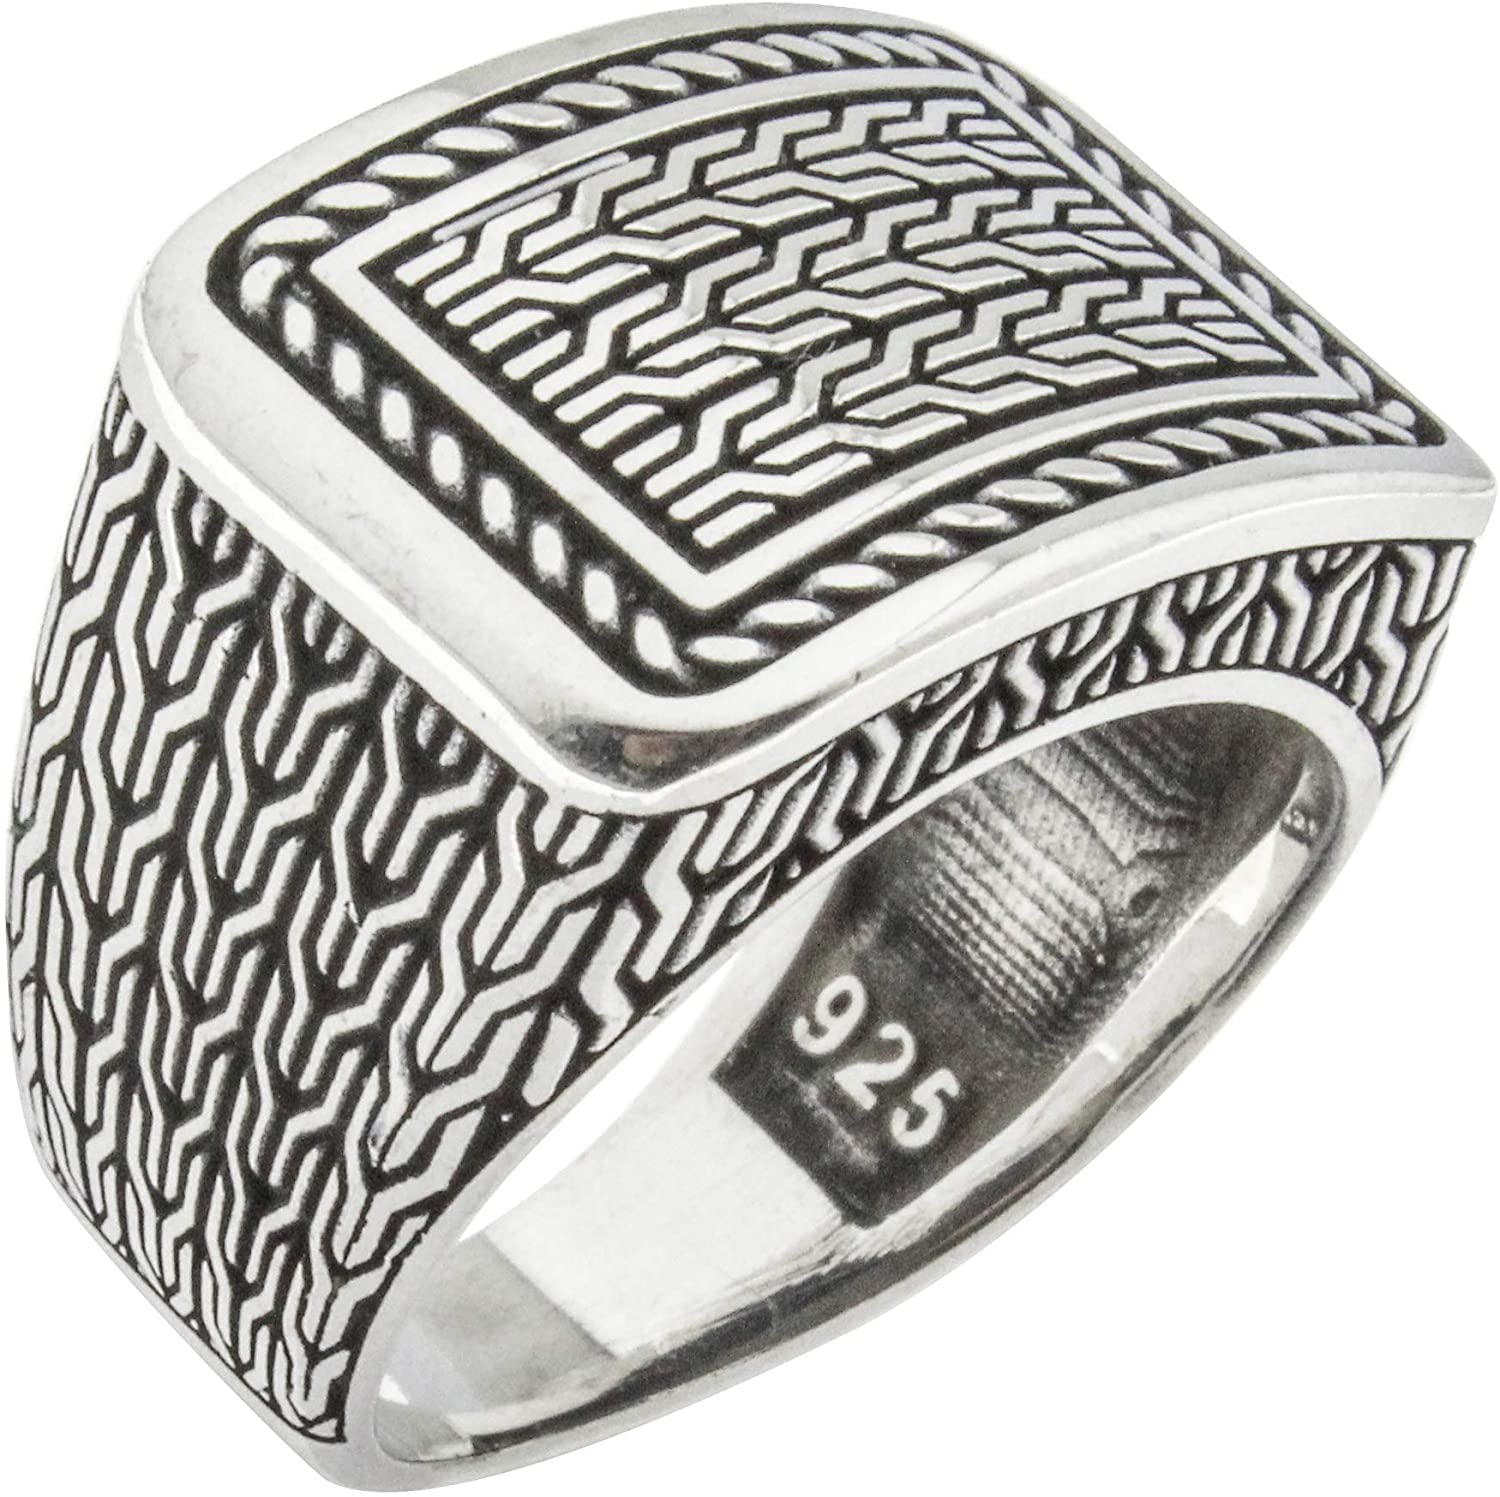 Solid 925 Sterling Silver Turkish Handmade Braided Knot Chain Men's Luxury Ring